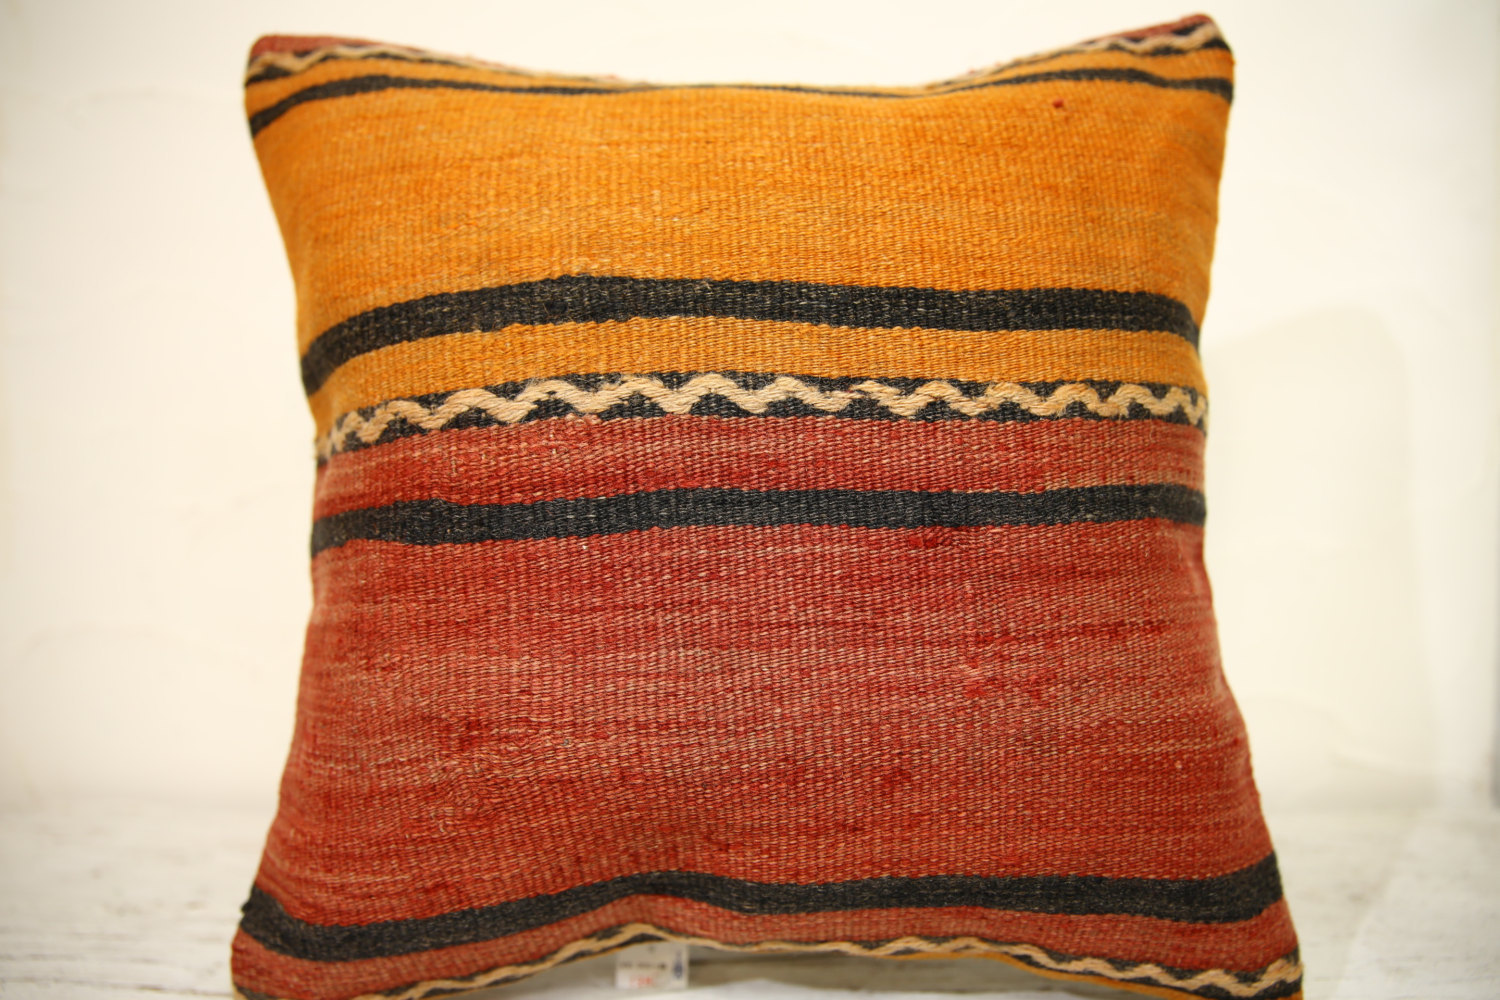 Kilim Pillows | 16x16 | Turkish pillows | 1348 | Accent Pillow,Decorative Pillow